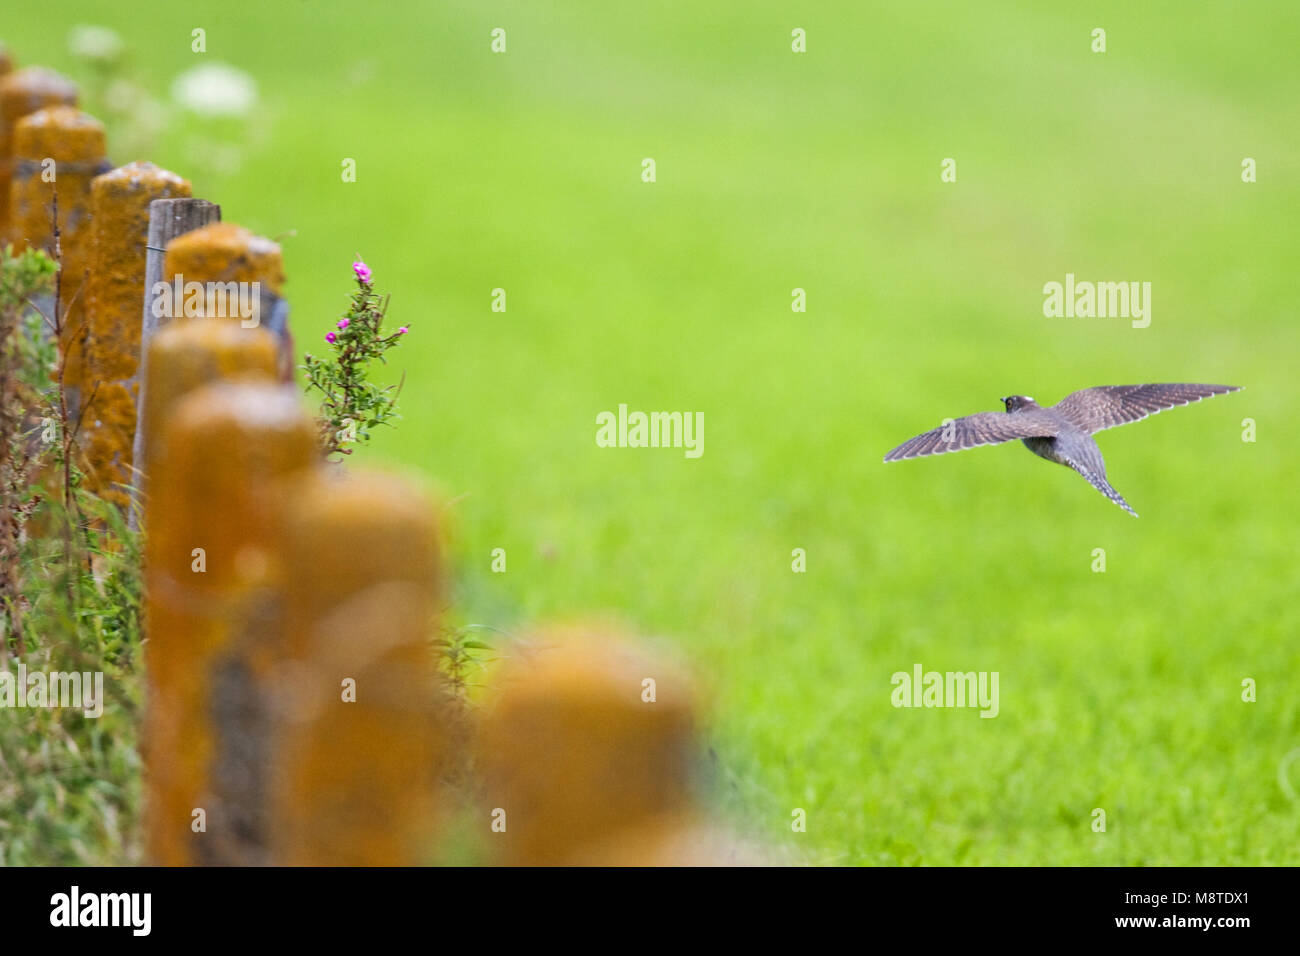 Mannetje Koekoek in de vlucht; Male Eurasian Cuckoo in flight - Stock Image